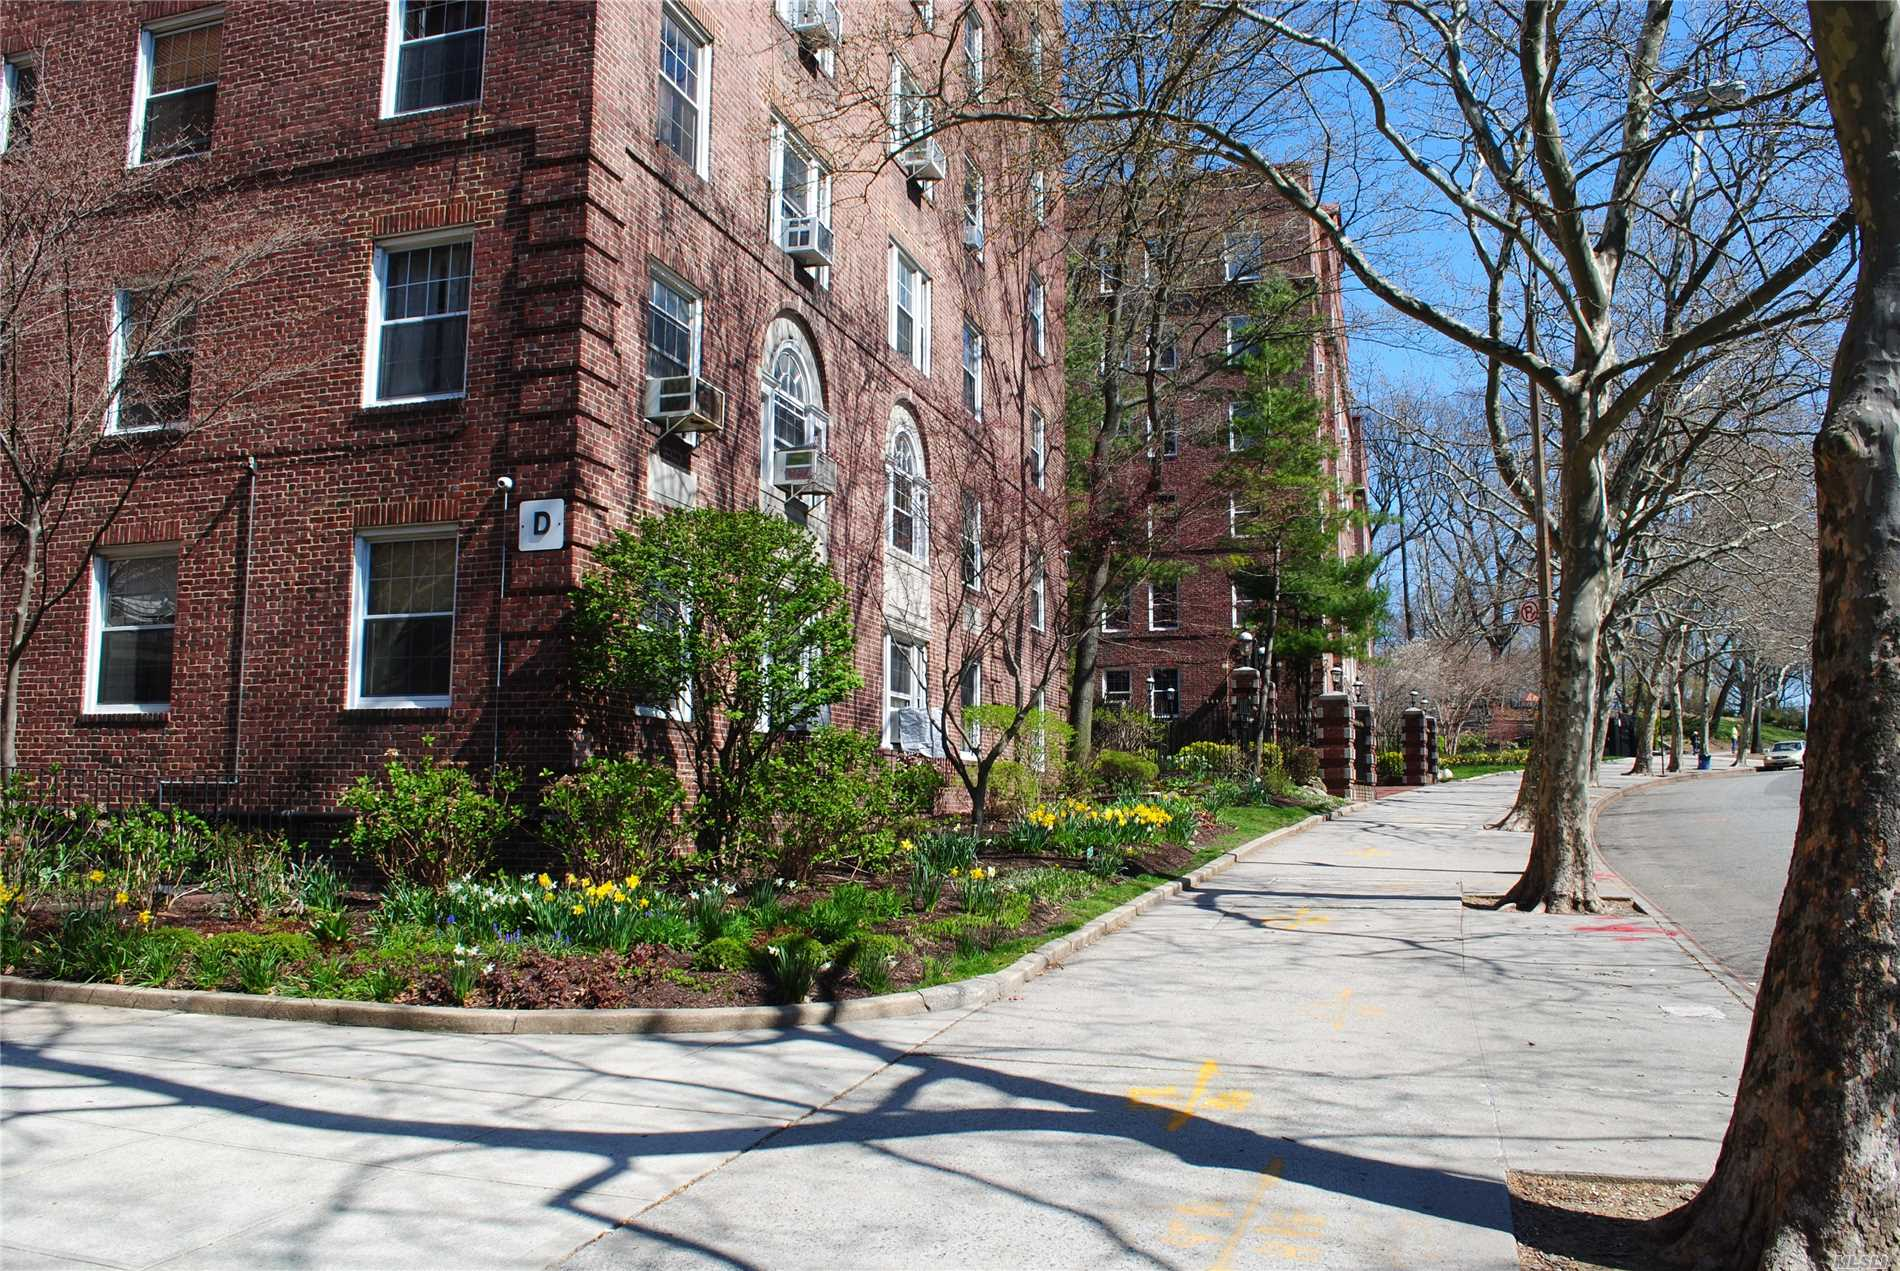 Over-Sized 1Br Apt In The Beautiful Hampton Court. A Large Entry Foyer/Sitting Area Leads To A True Eat-In-Kitchen With Plenty Of Cabinet/Counter Space, Stainless Steel Appliances And A Built-In Microwave, An Airy Living Room With Beautiful Courtyard Views, A Marble Bath With And A Very Spacious Br That Is Quietly Tucked Away From The Living Area.The Classic Features Of This Beautiful Unit Are Defined By The High Ceilings, Lots Of Wide Windows, Plenty Of Closet Space, Arches And Moldings.